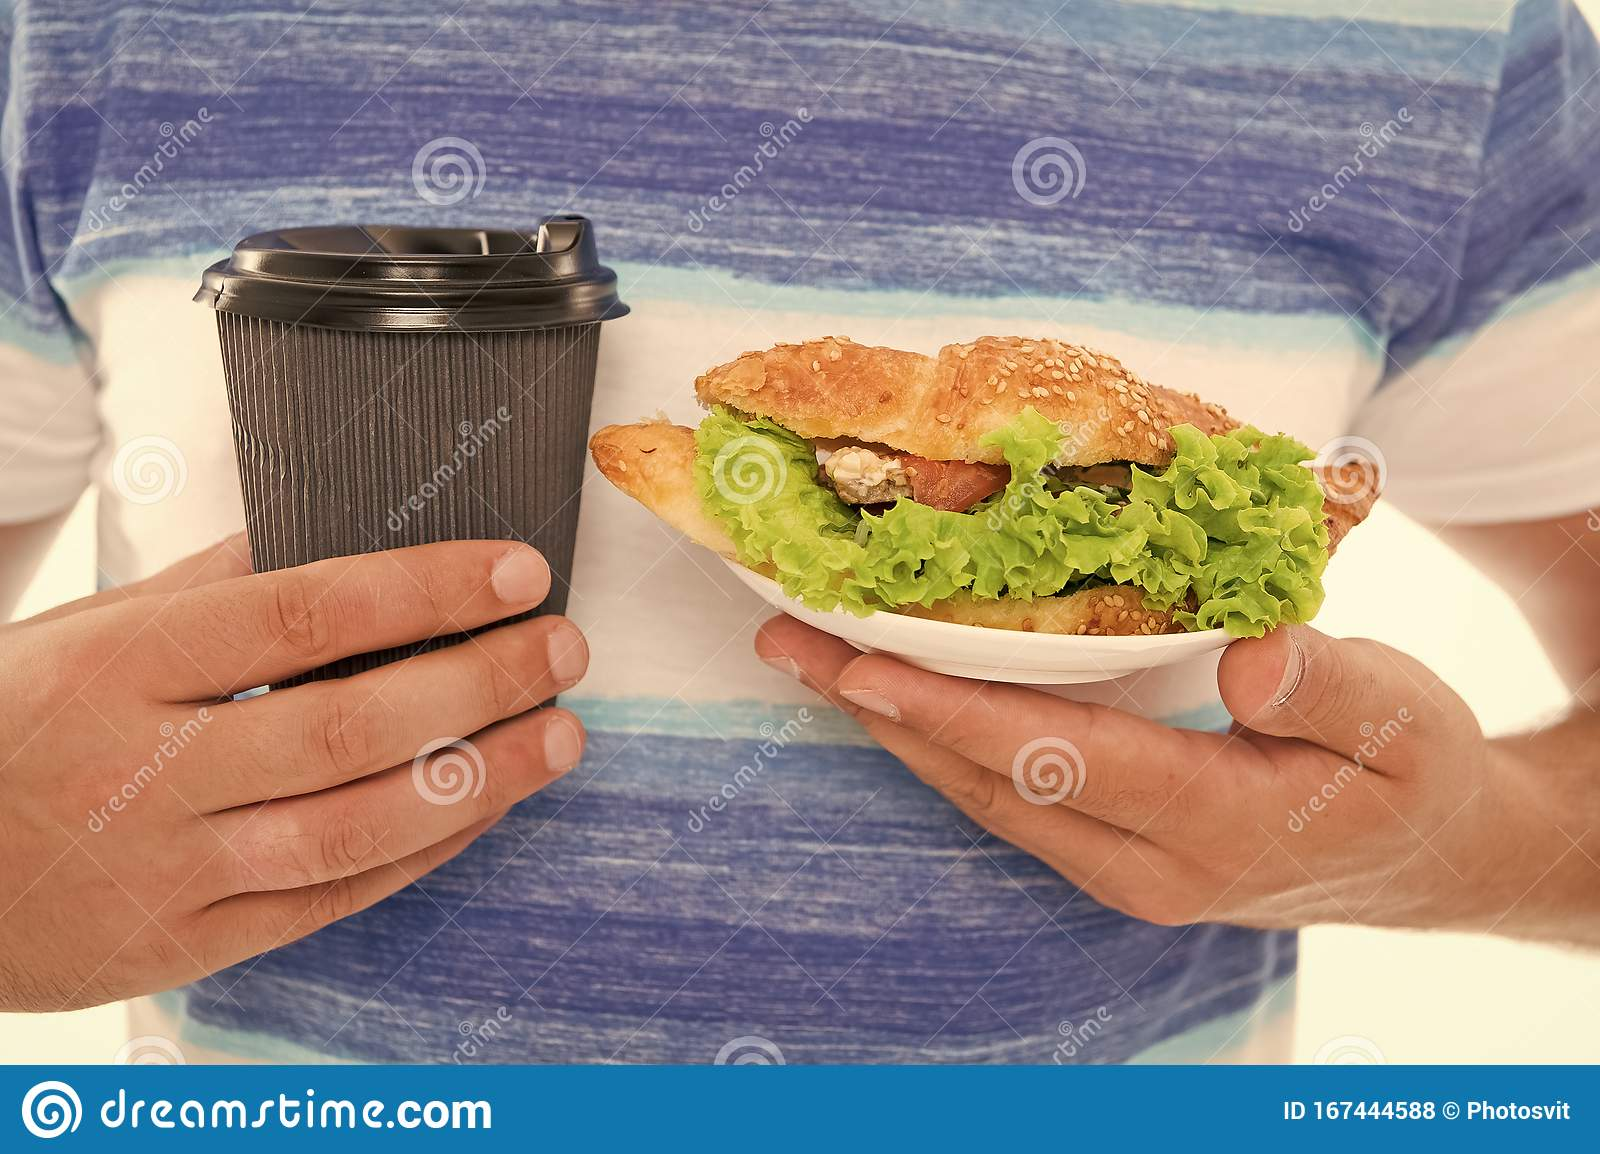 Quick Snack. Coffee And Croissant. Junk Food. Calories And..